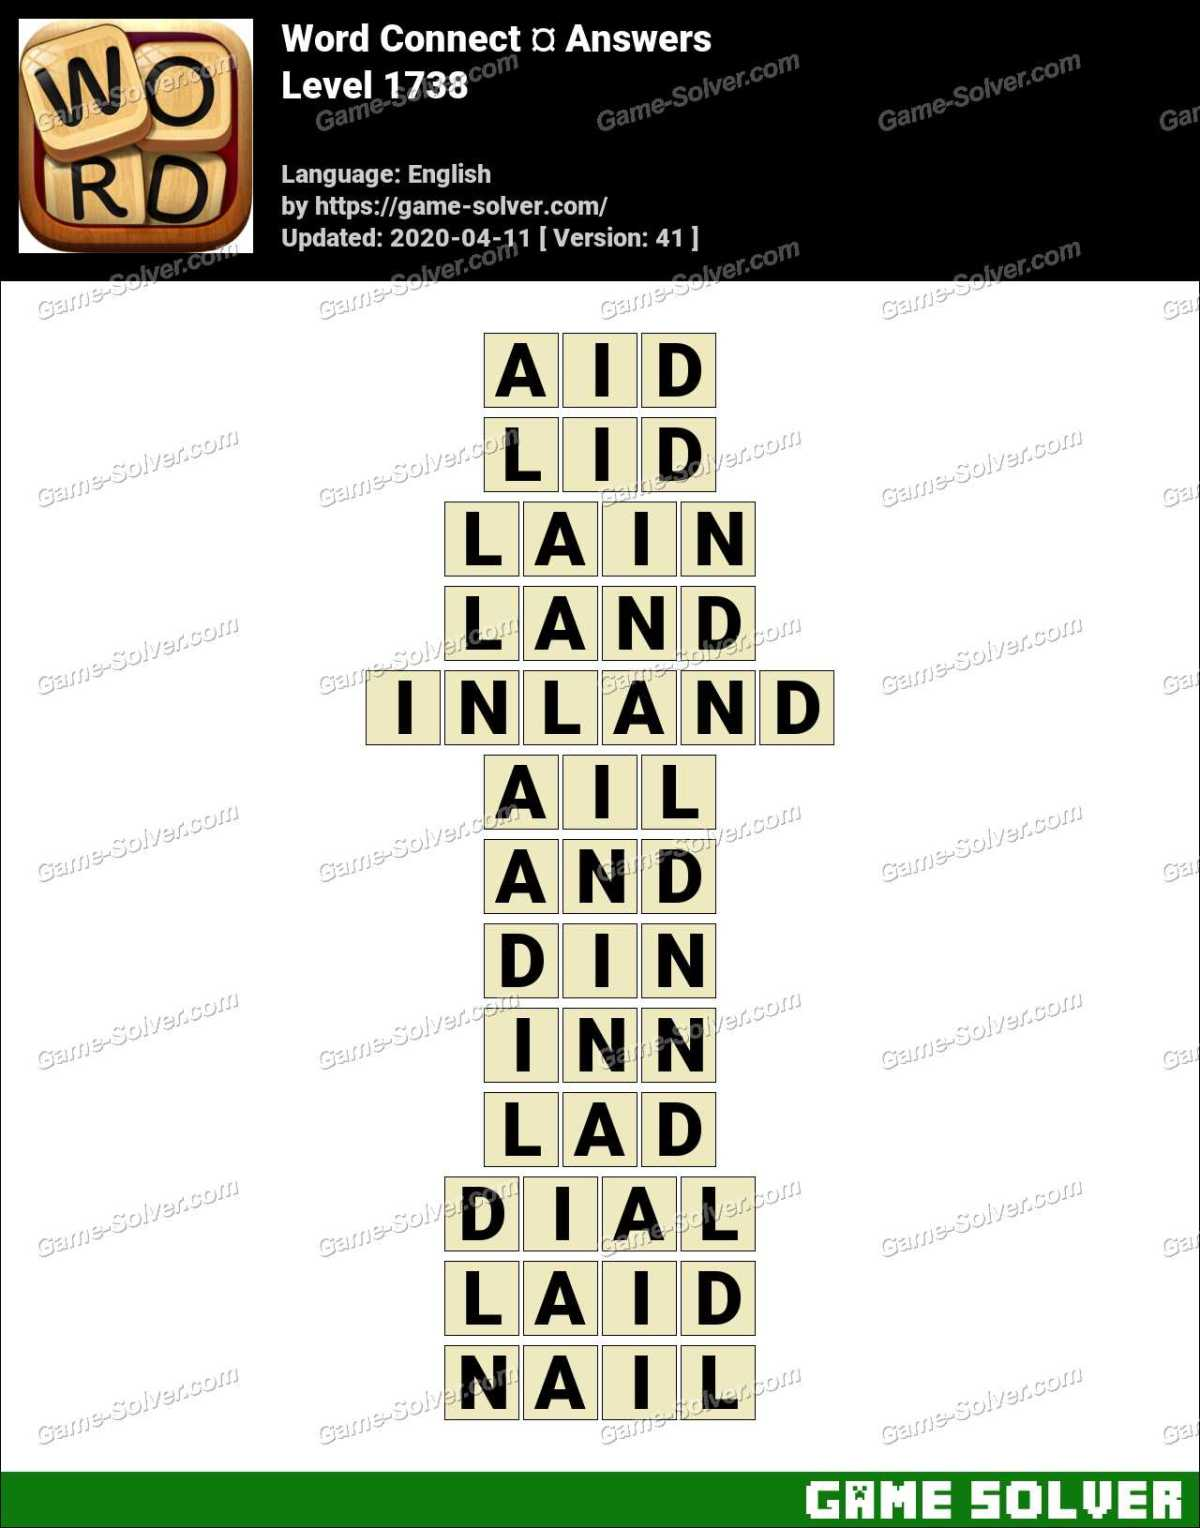 Word Connect Level 1738 Answers